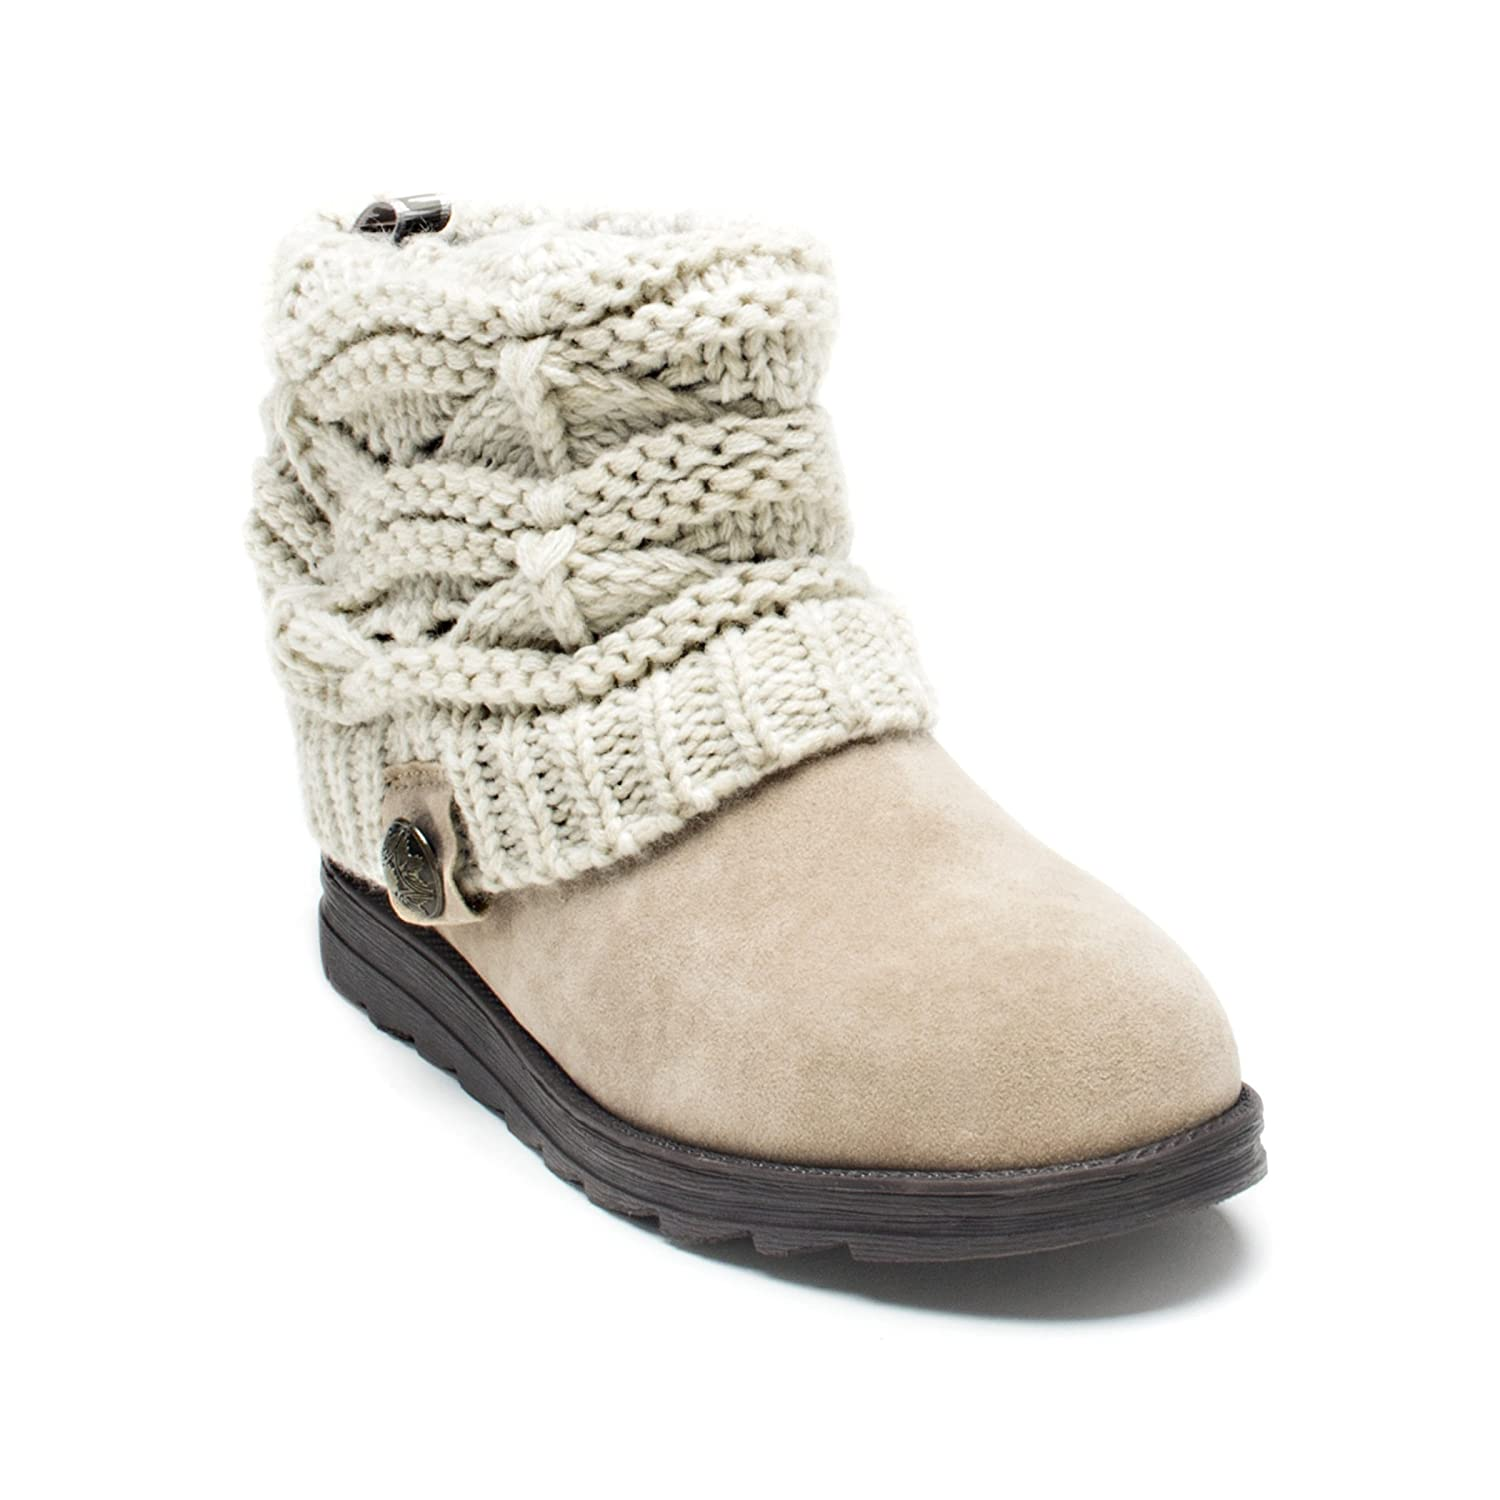 MUK LUKS Women's Patti Crochette Winter Boot B00VM0SHSE 8 W US|Beige